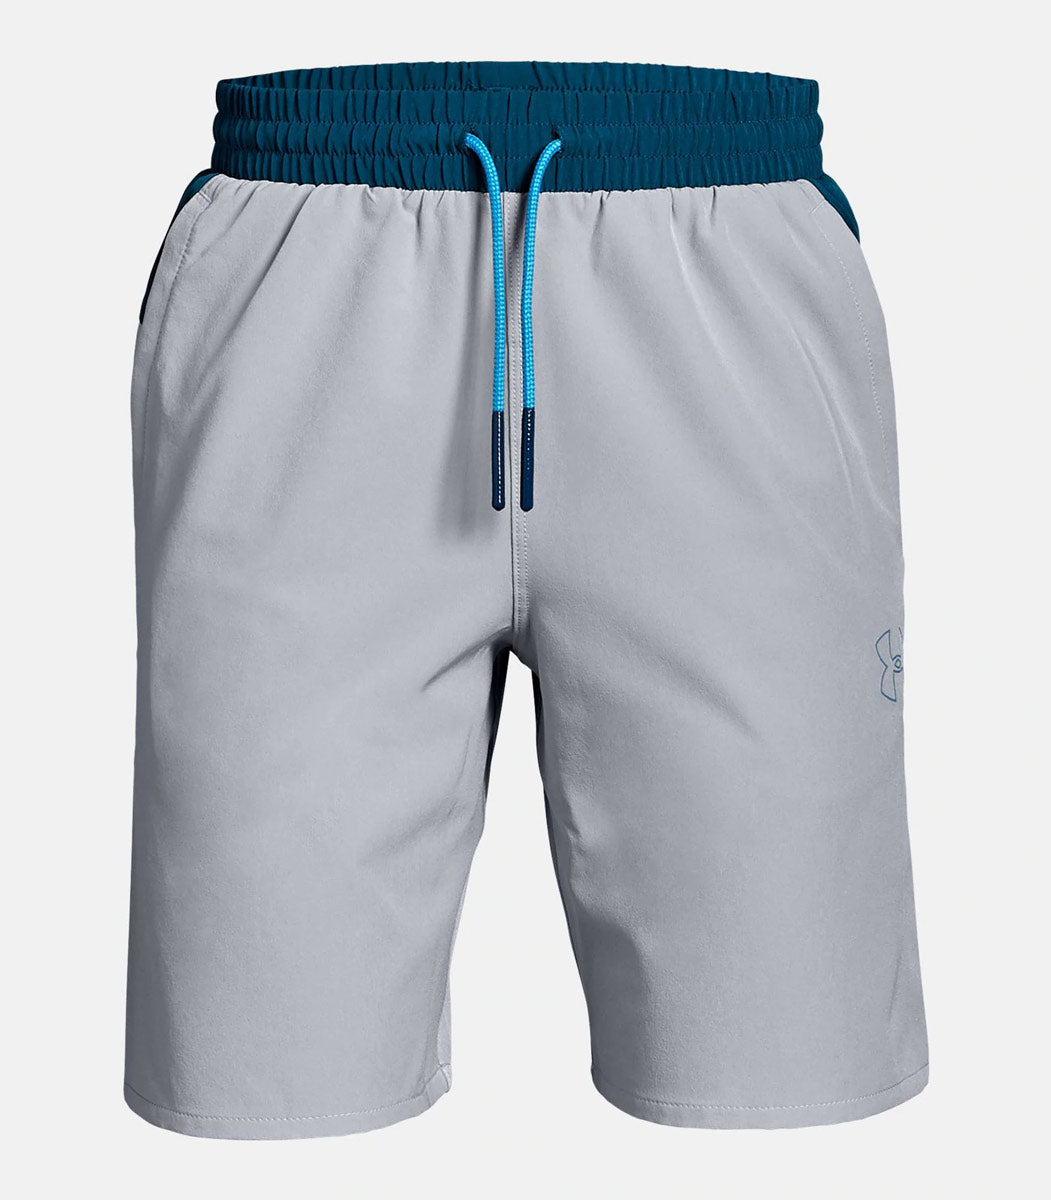 a3af1f3d5 ... Under Armour Splash Shorts ...